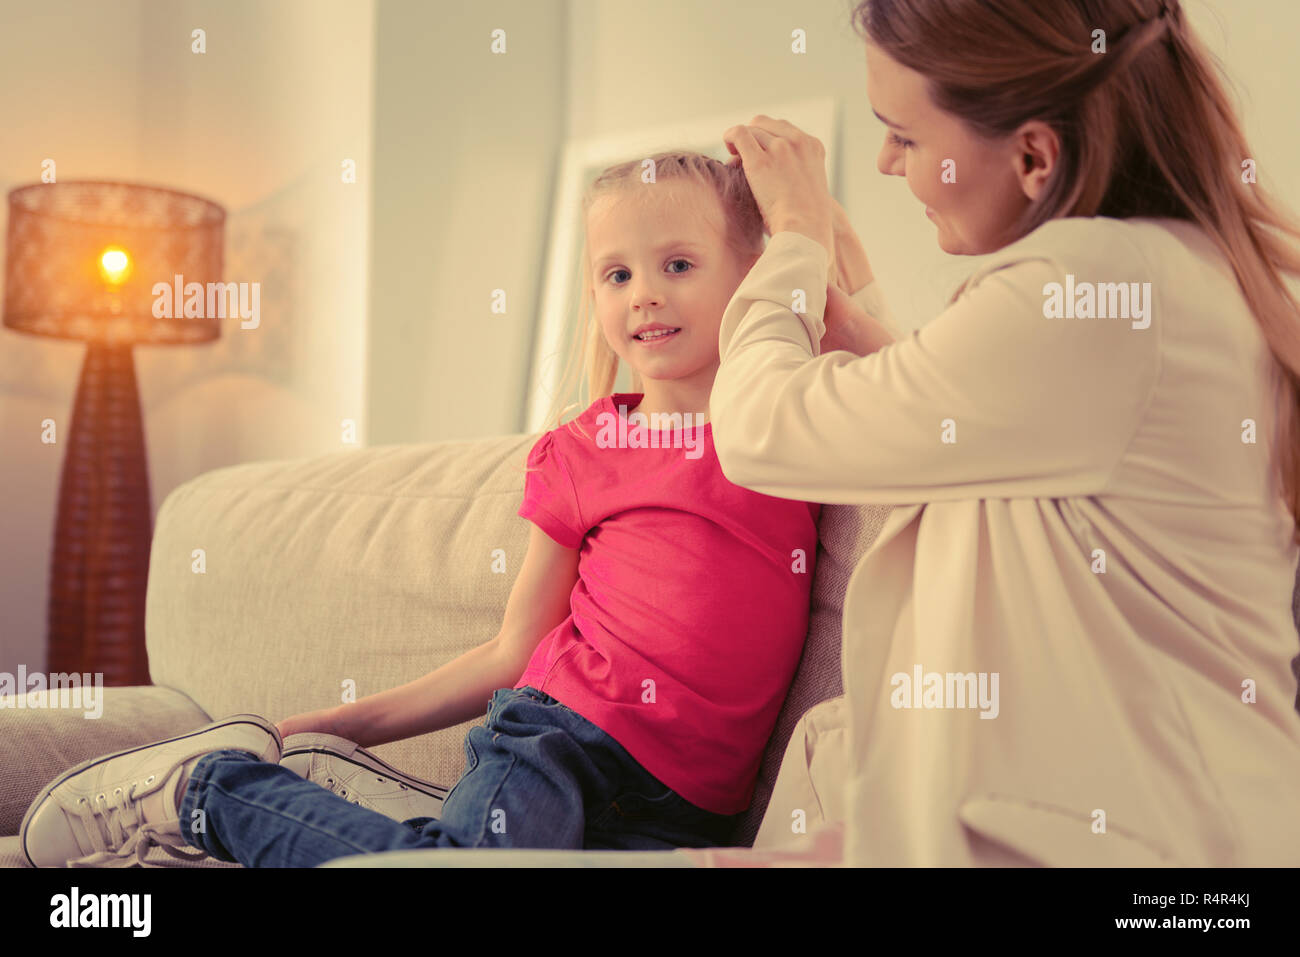 Cheerful pleasant girl having her ponytails done - Stock Image